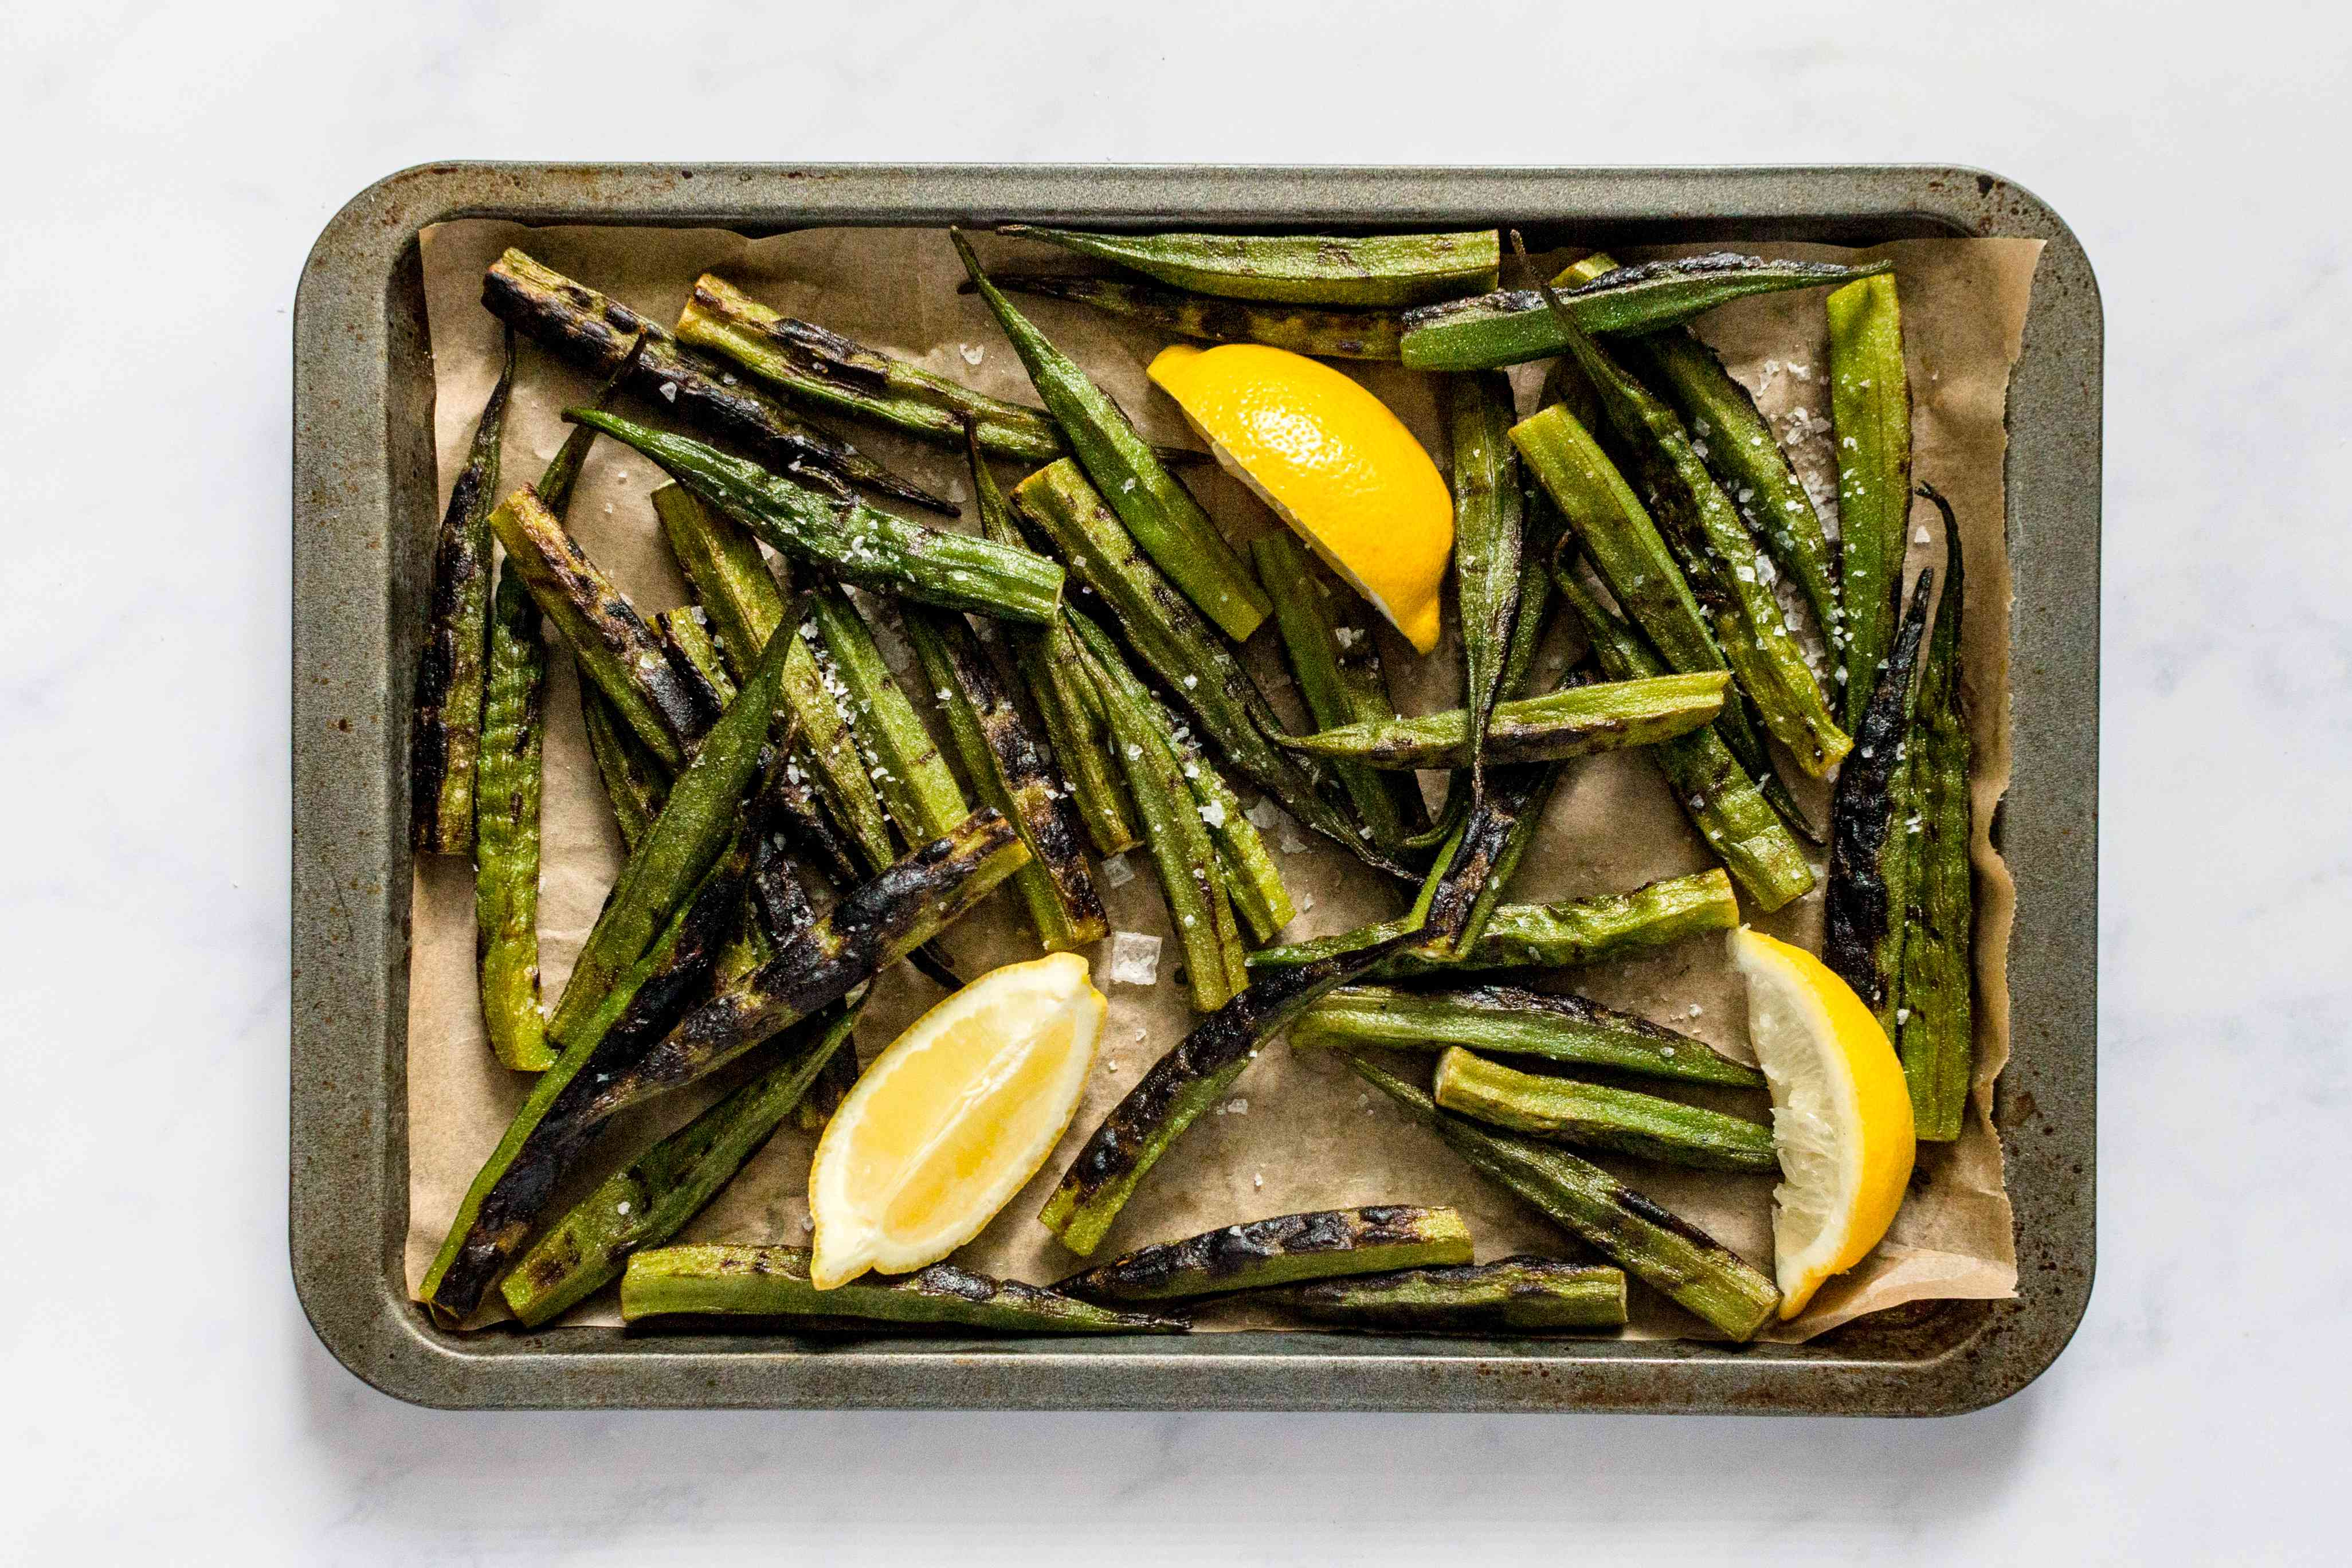 Grilled Okra and lemons on a baking sheet